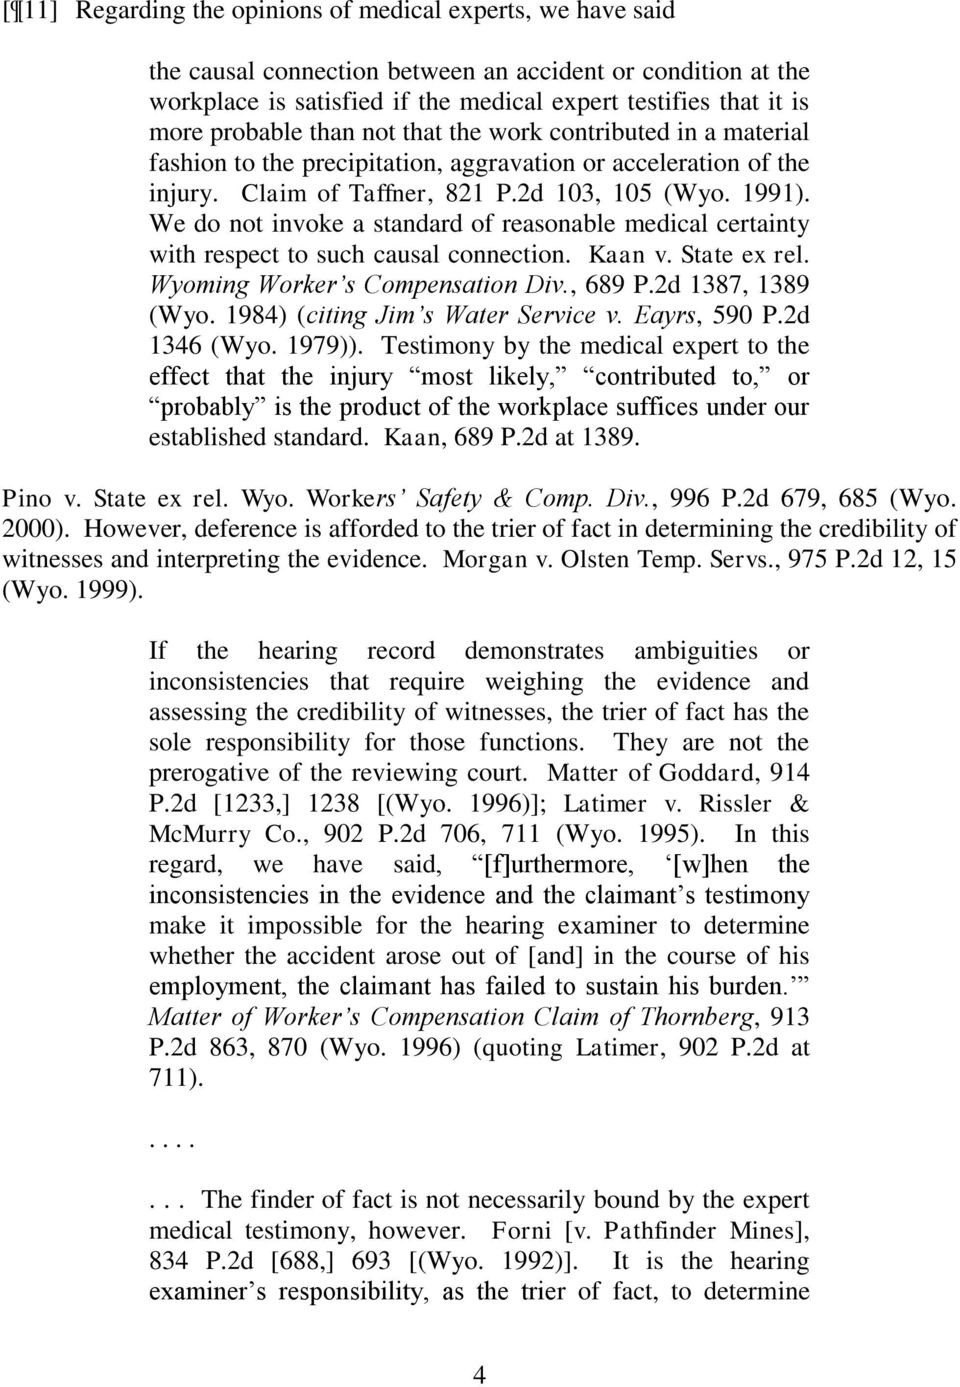 We do not invoke a standard of reasonable medical certainty with respect to such causal connection. Kaan v. State ex rel. Wyoming Worker s Compensation Div., 689 P.2d 1387, 1389 (Wyo.